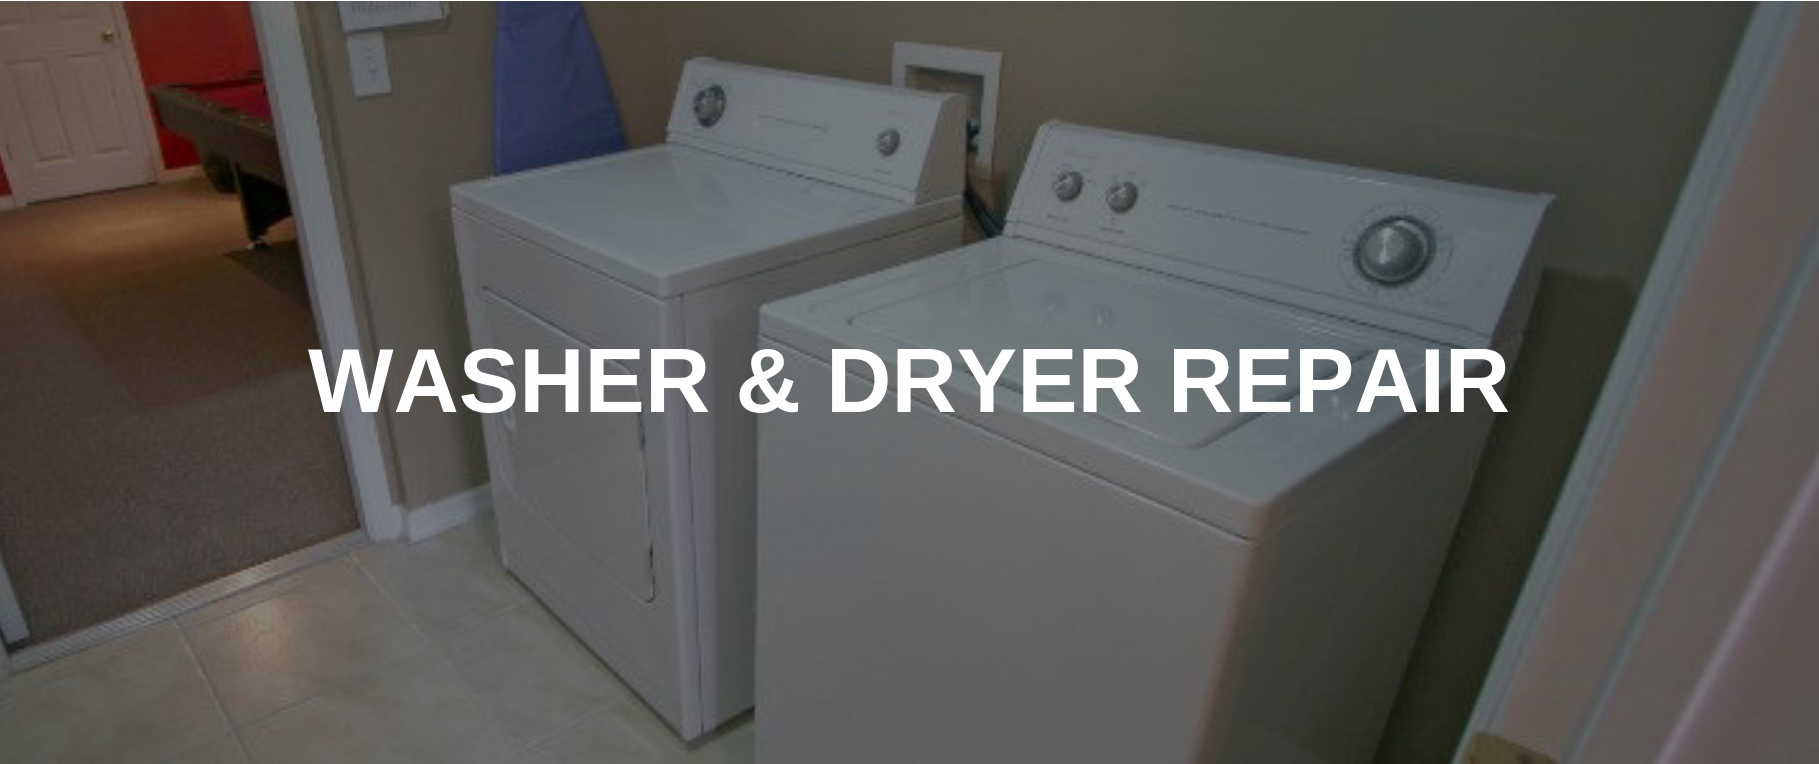 washing machine repair hillsboro